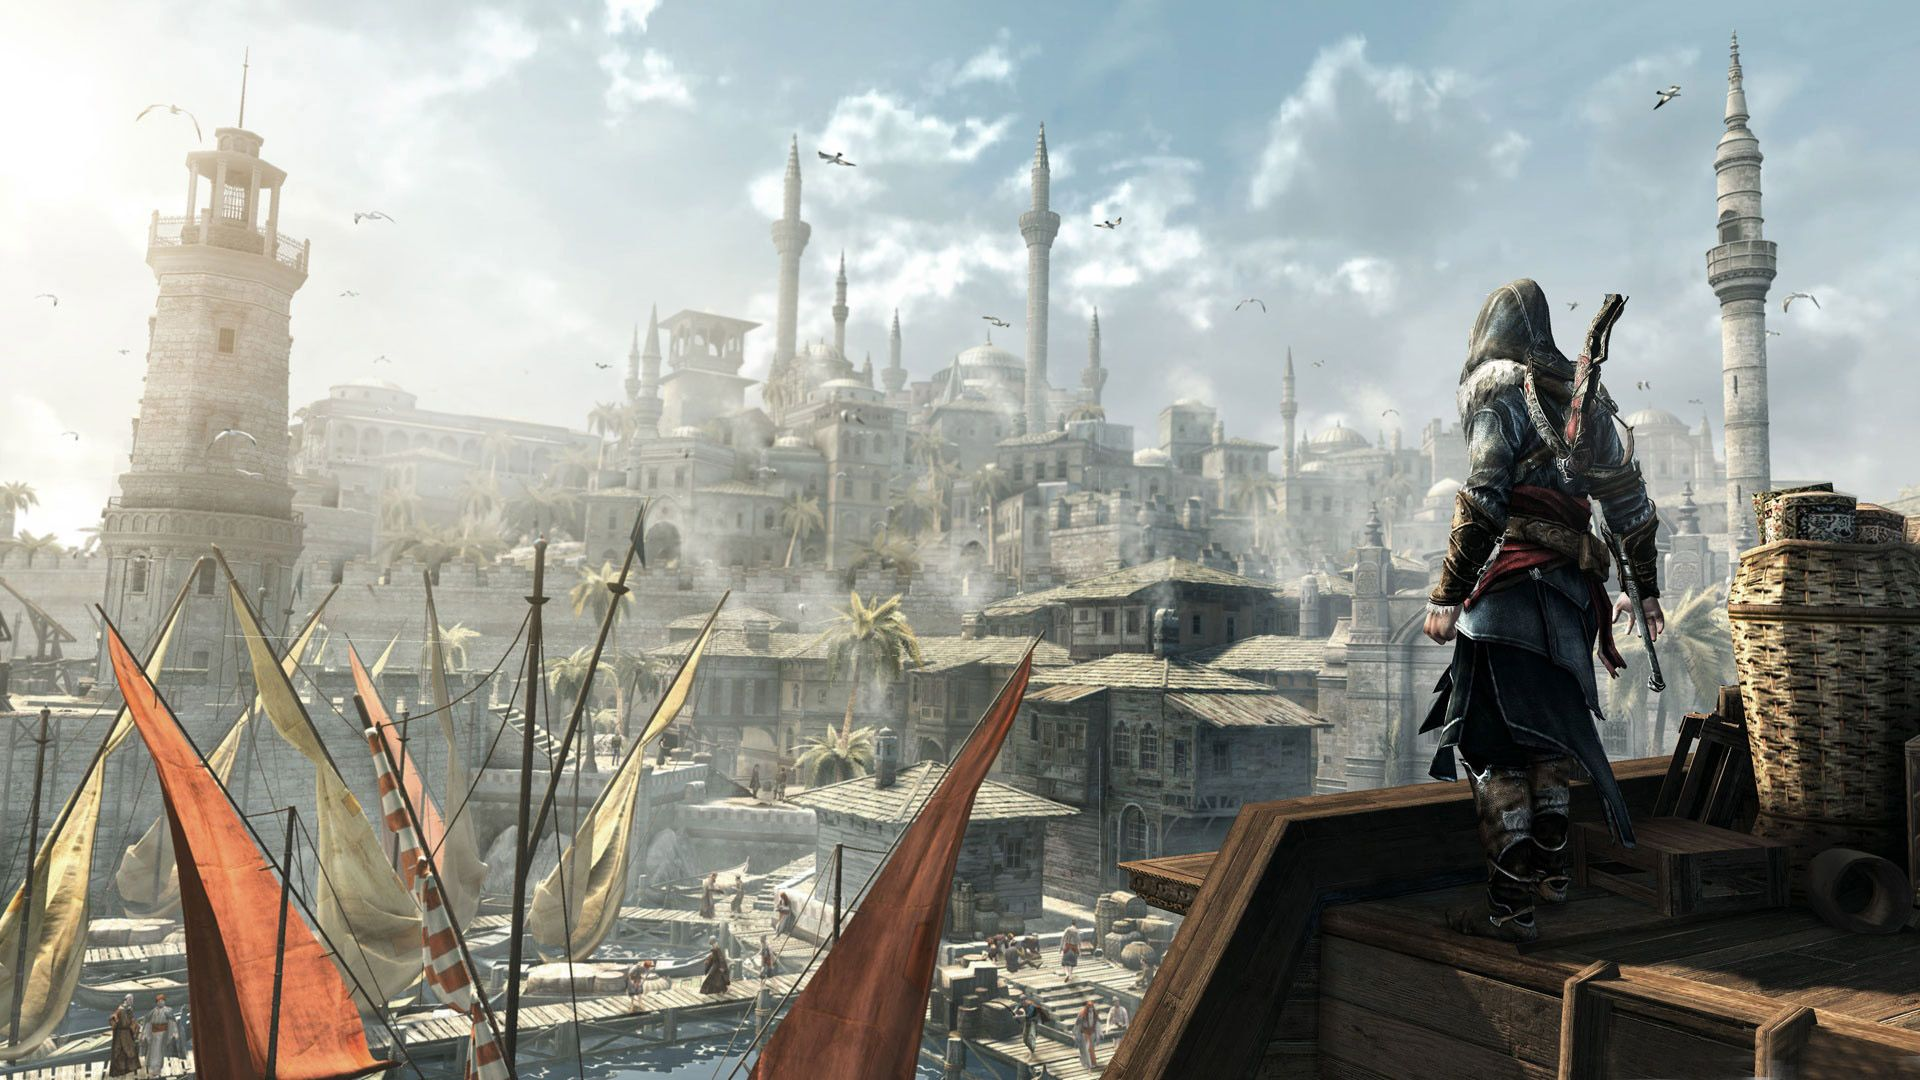 The Wallpapers Of Assassin's Creed